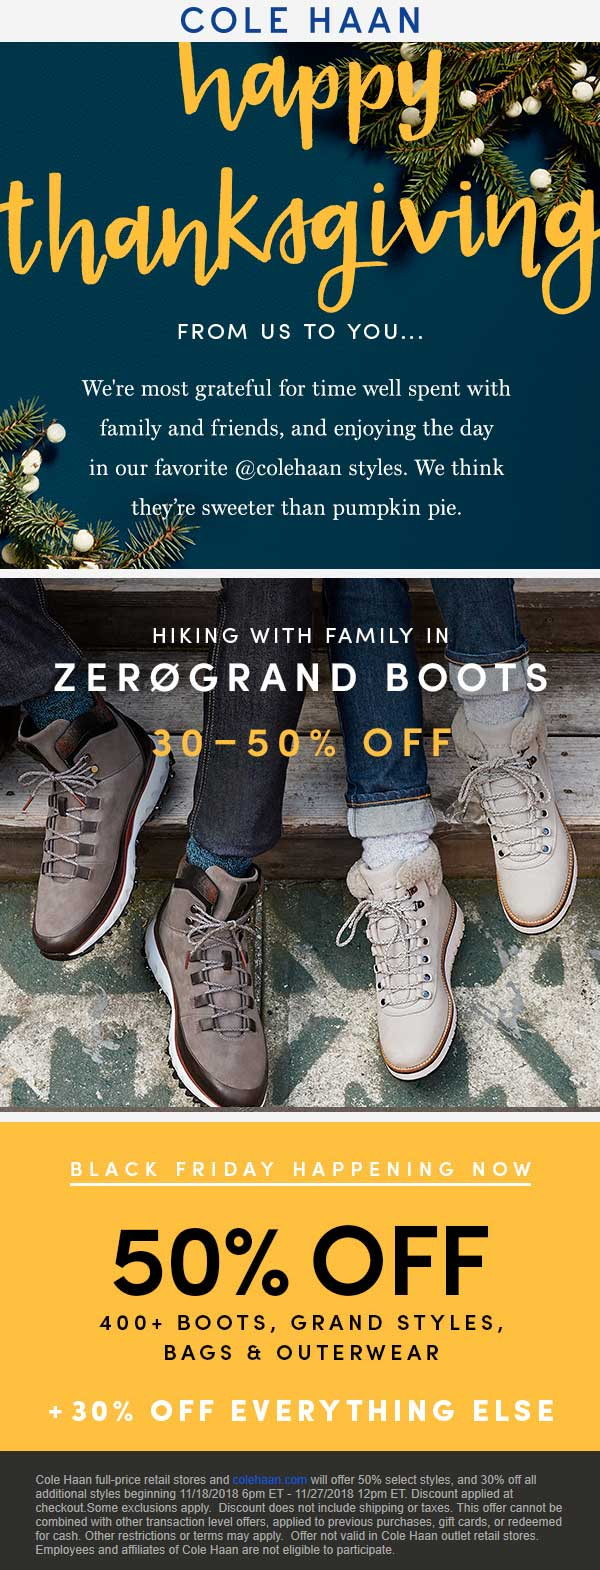 Cole Haan Coupon January 2020 30-50% off everything at Cole Haan, ditto online